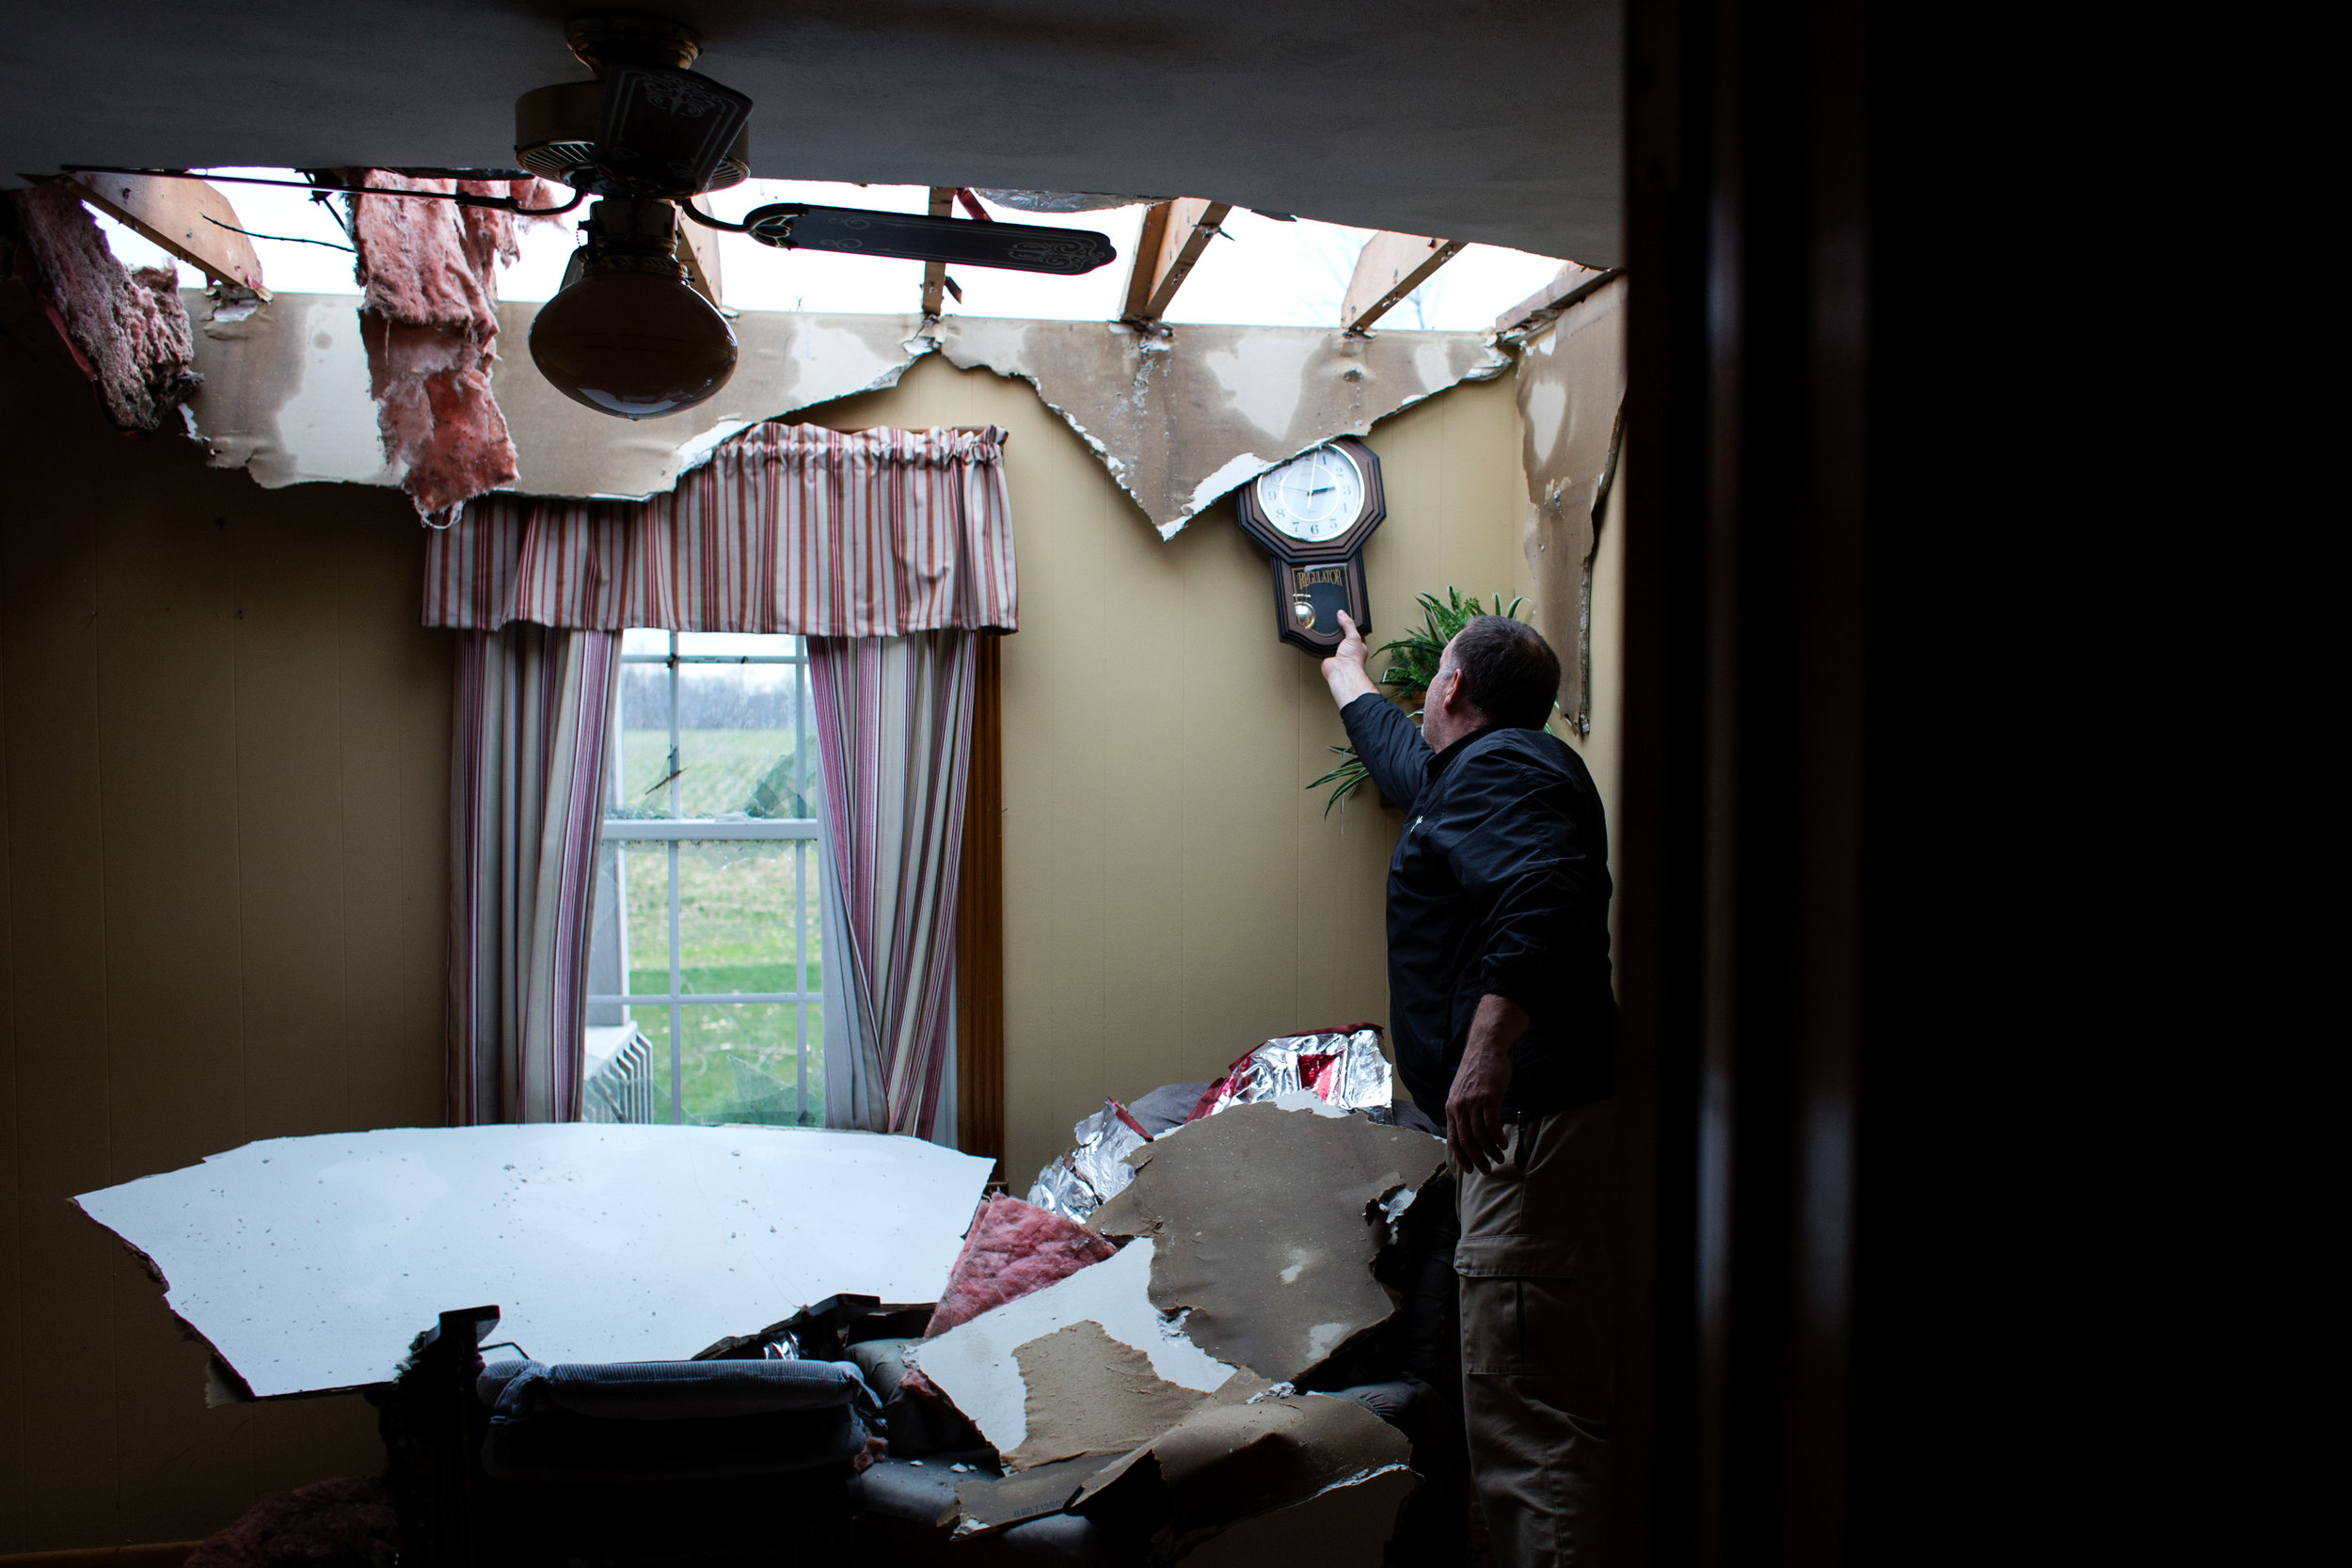 David Main of Jasper took a clock from the wall while collecting salvageable items after a tornado destroyed the home of his friends, Ed and Kathy Vollmer, Wednesday, March 1, 2017, in Ireland.